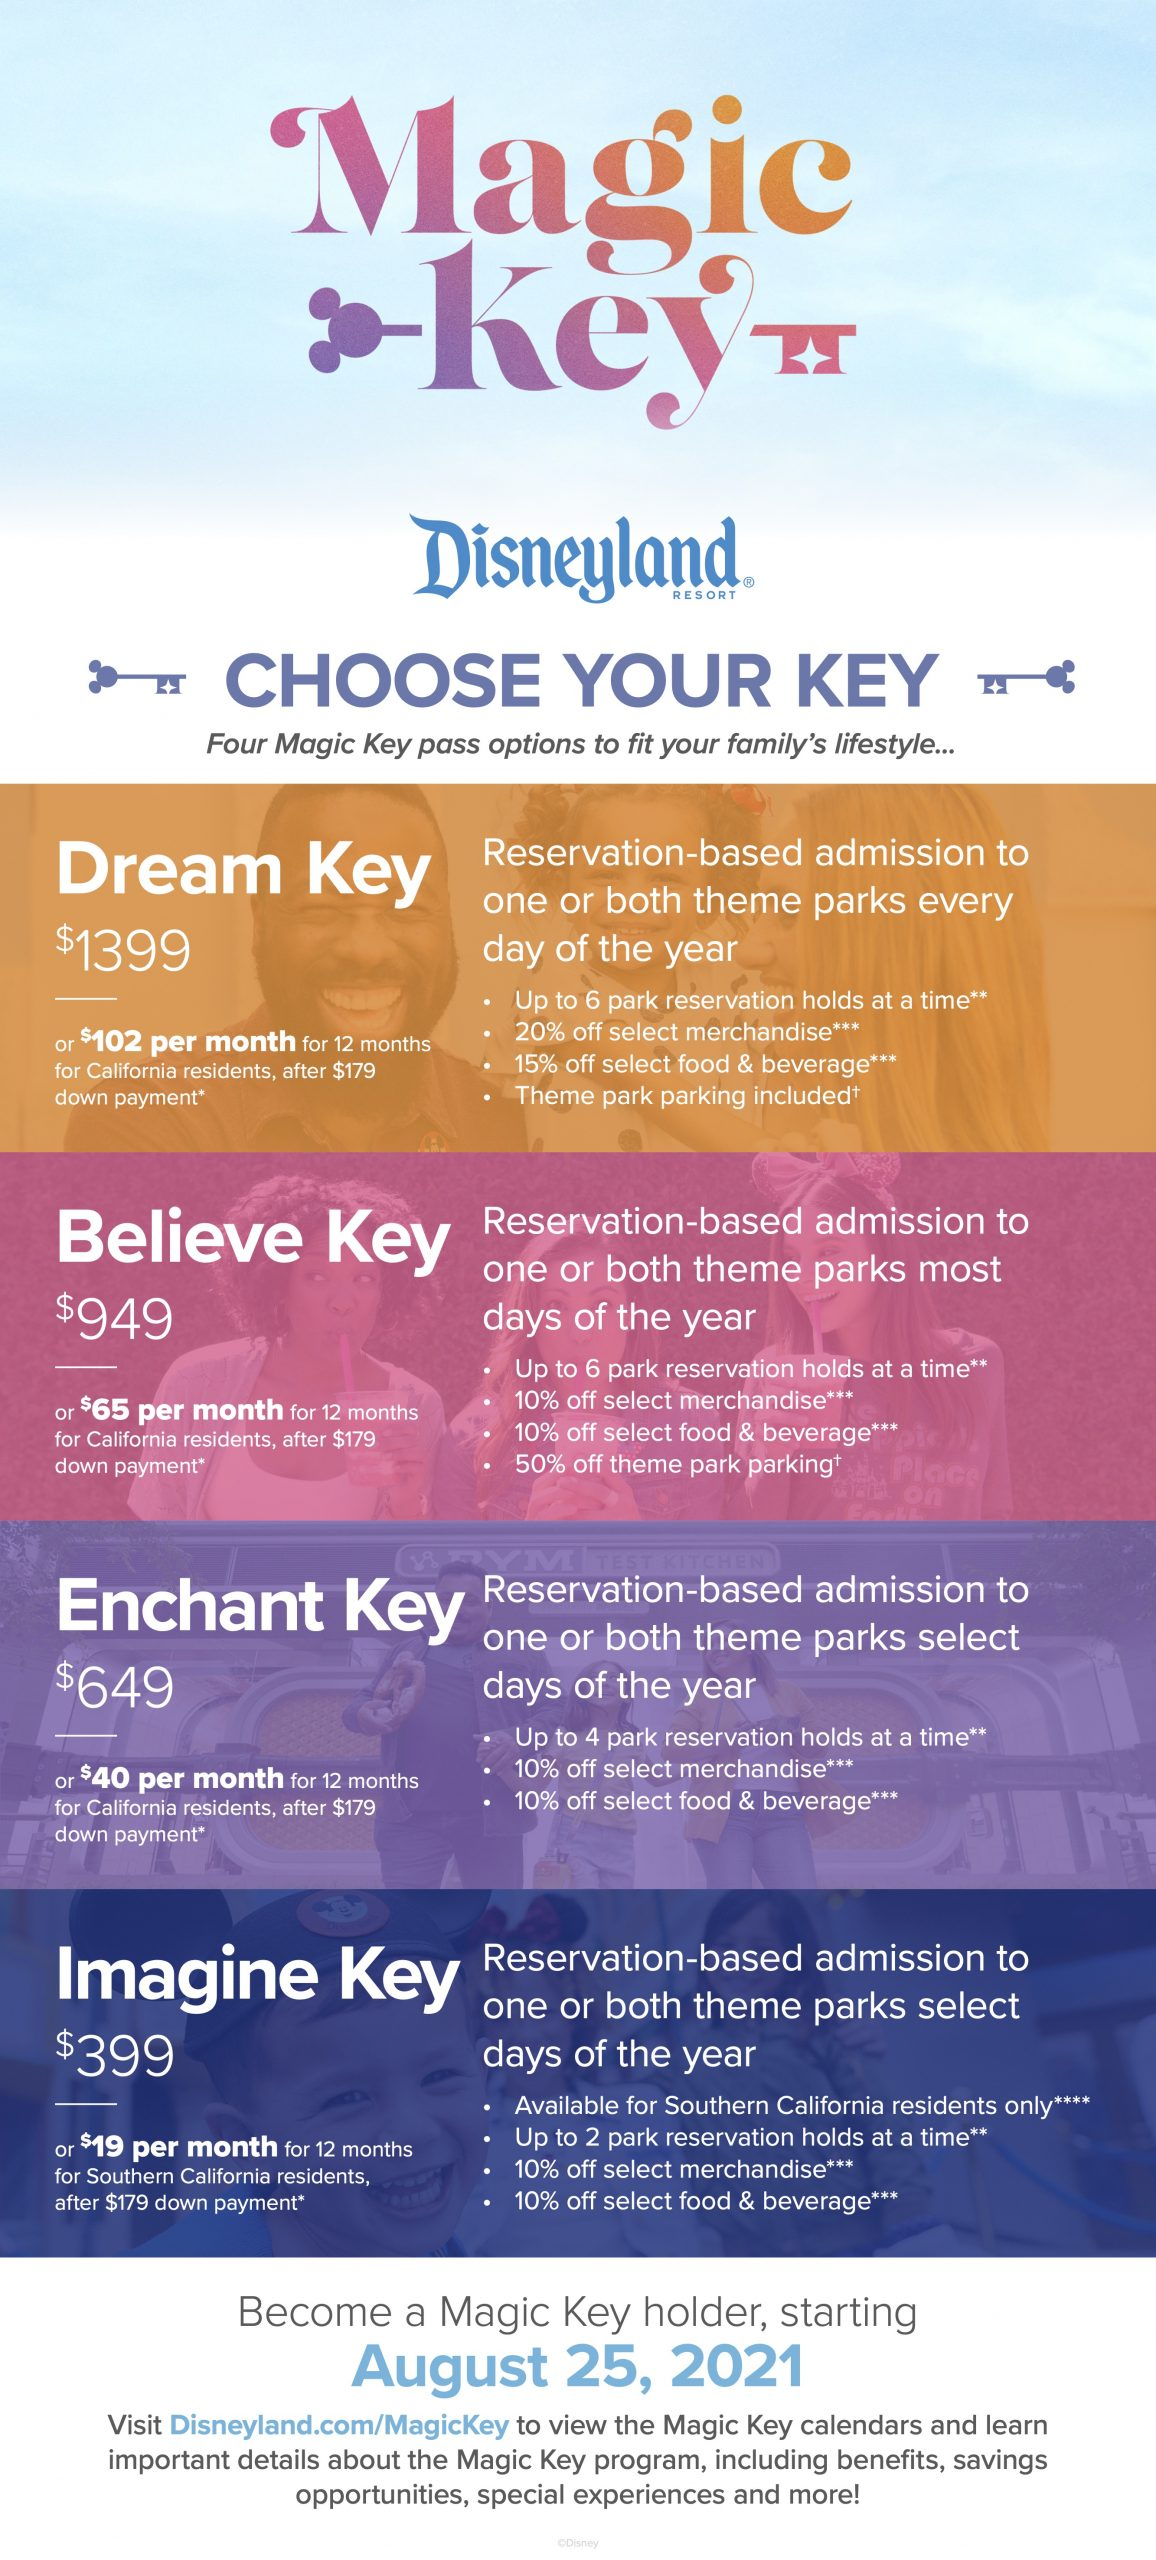 Disneyland Unveiled Its Magic Key Program. Here's What You Need to Know